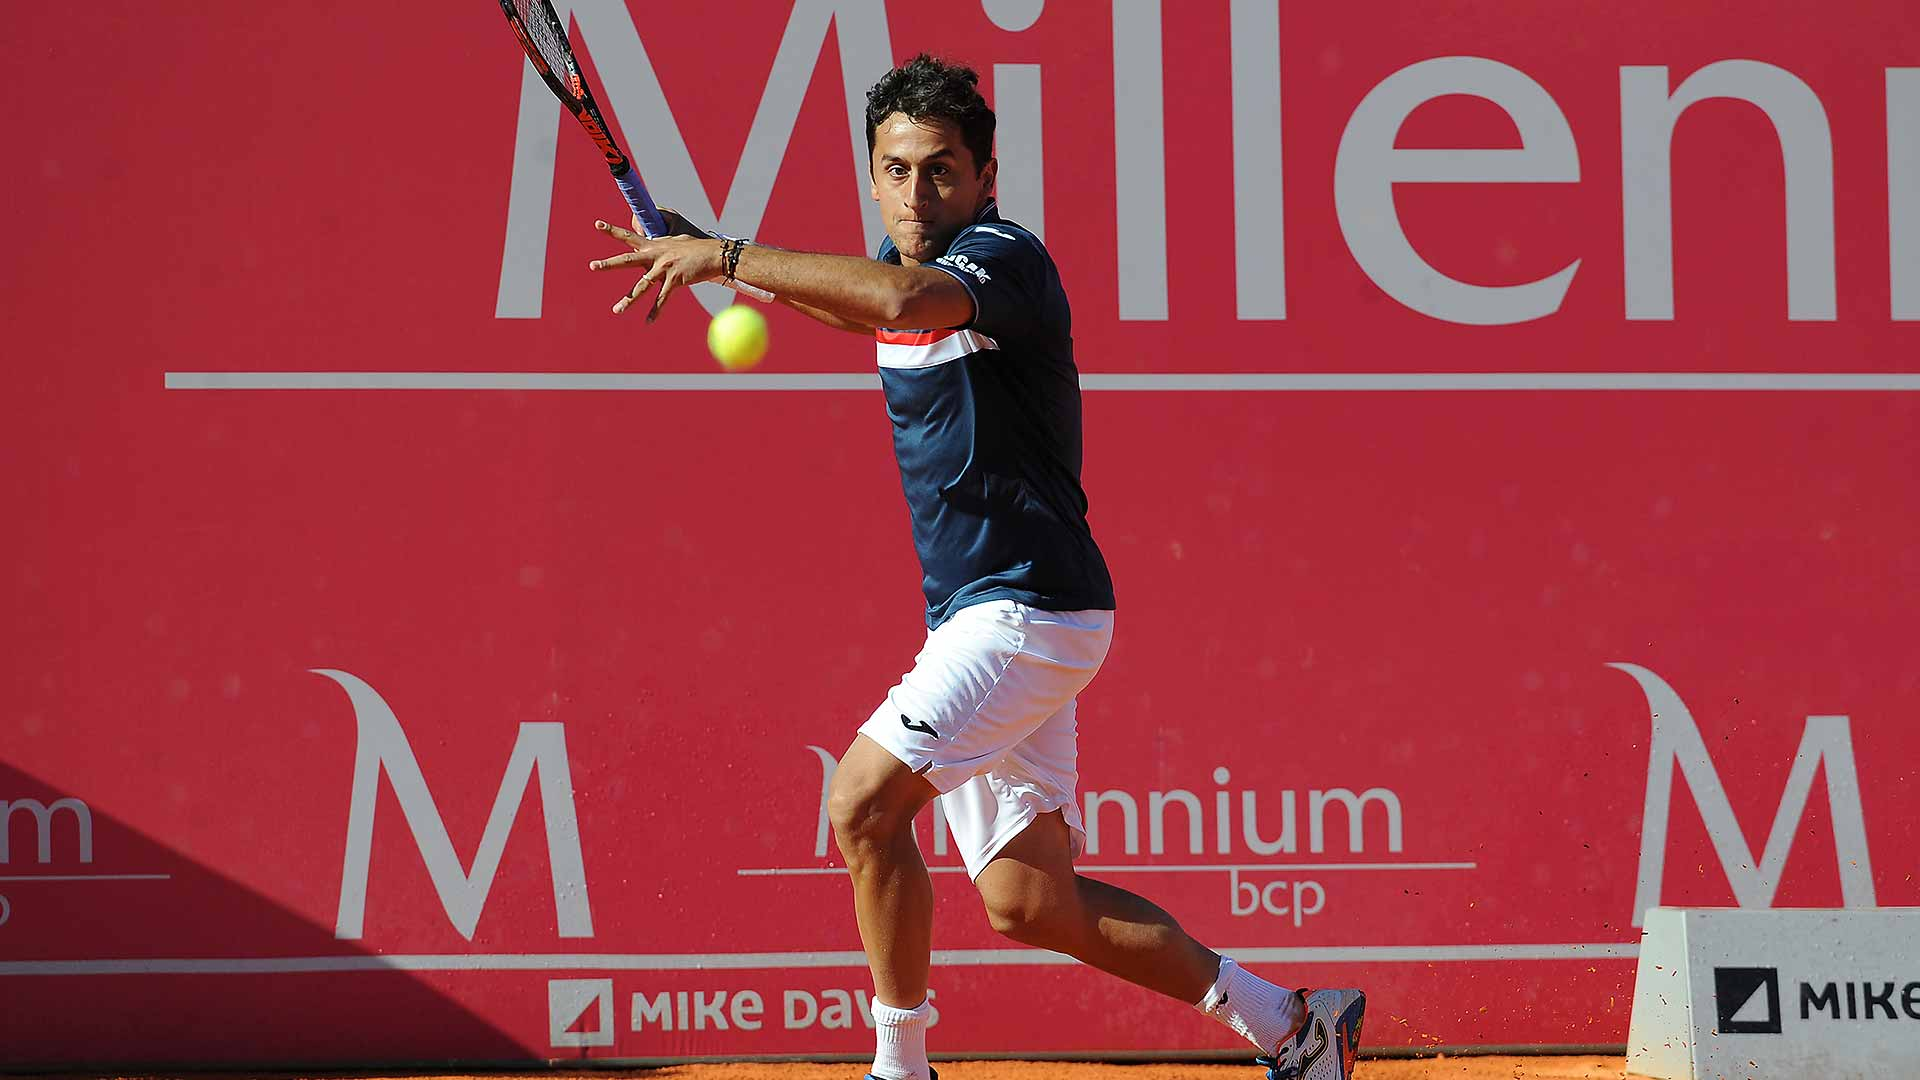 Nicolas Almagro downs Nick Kyrgios to reach the Estoril final.